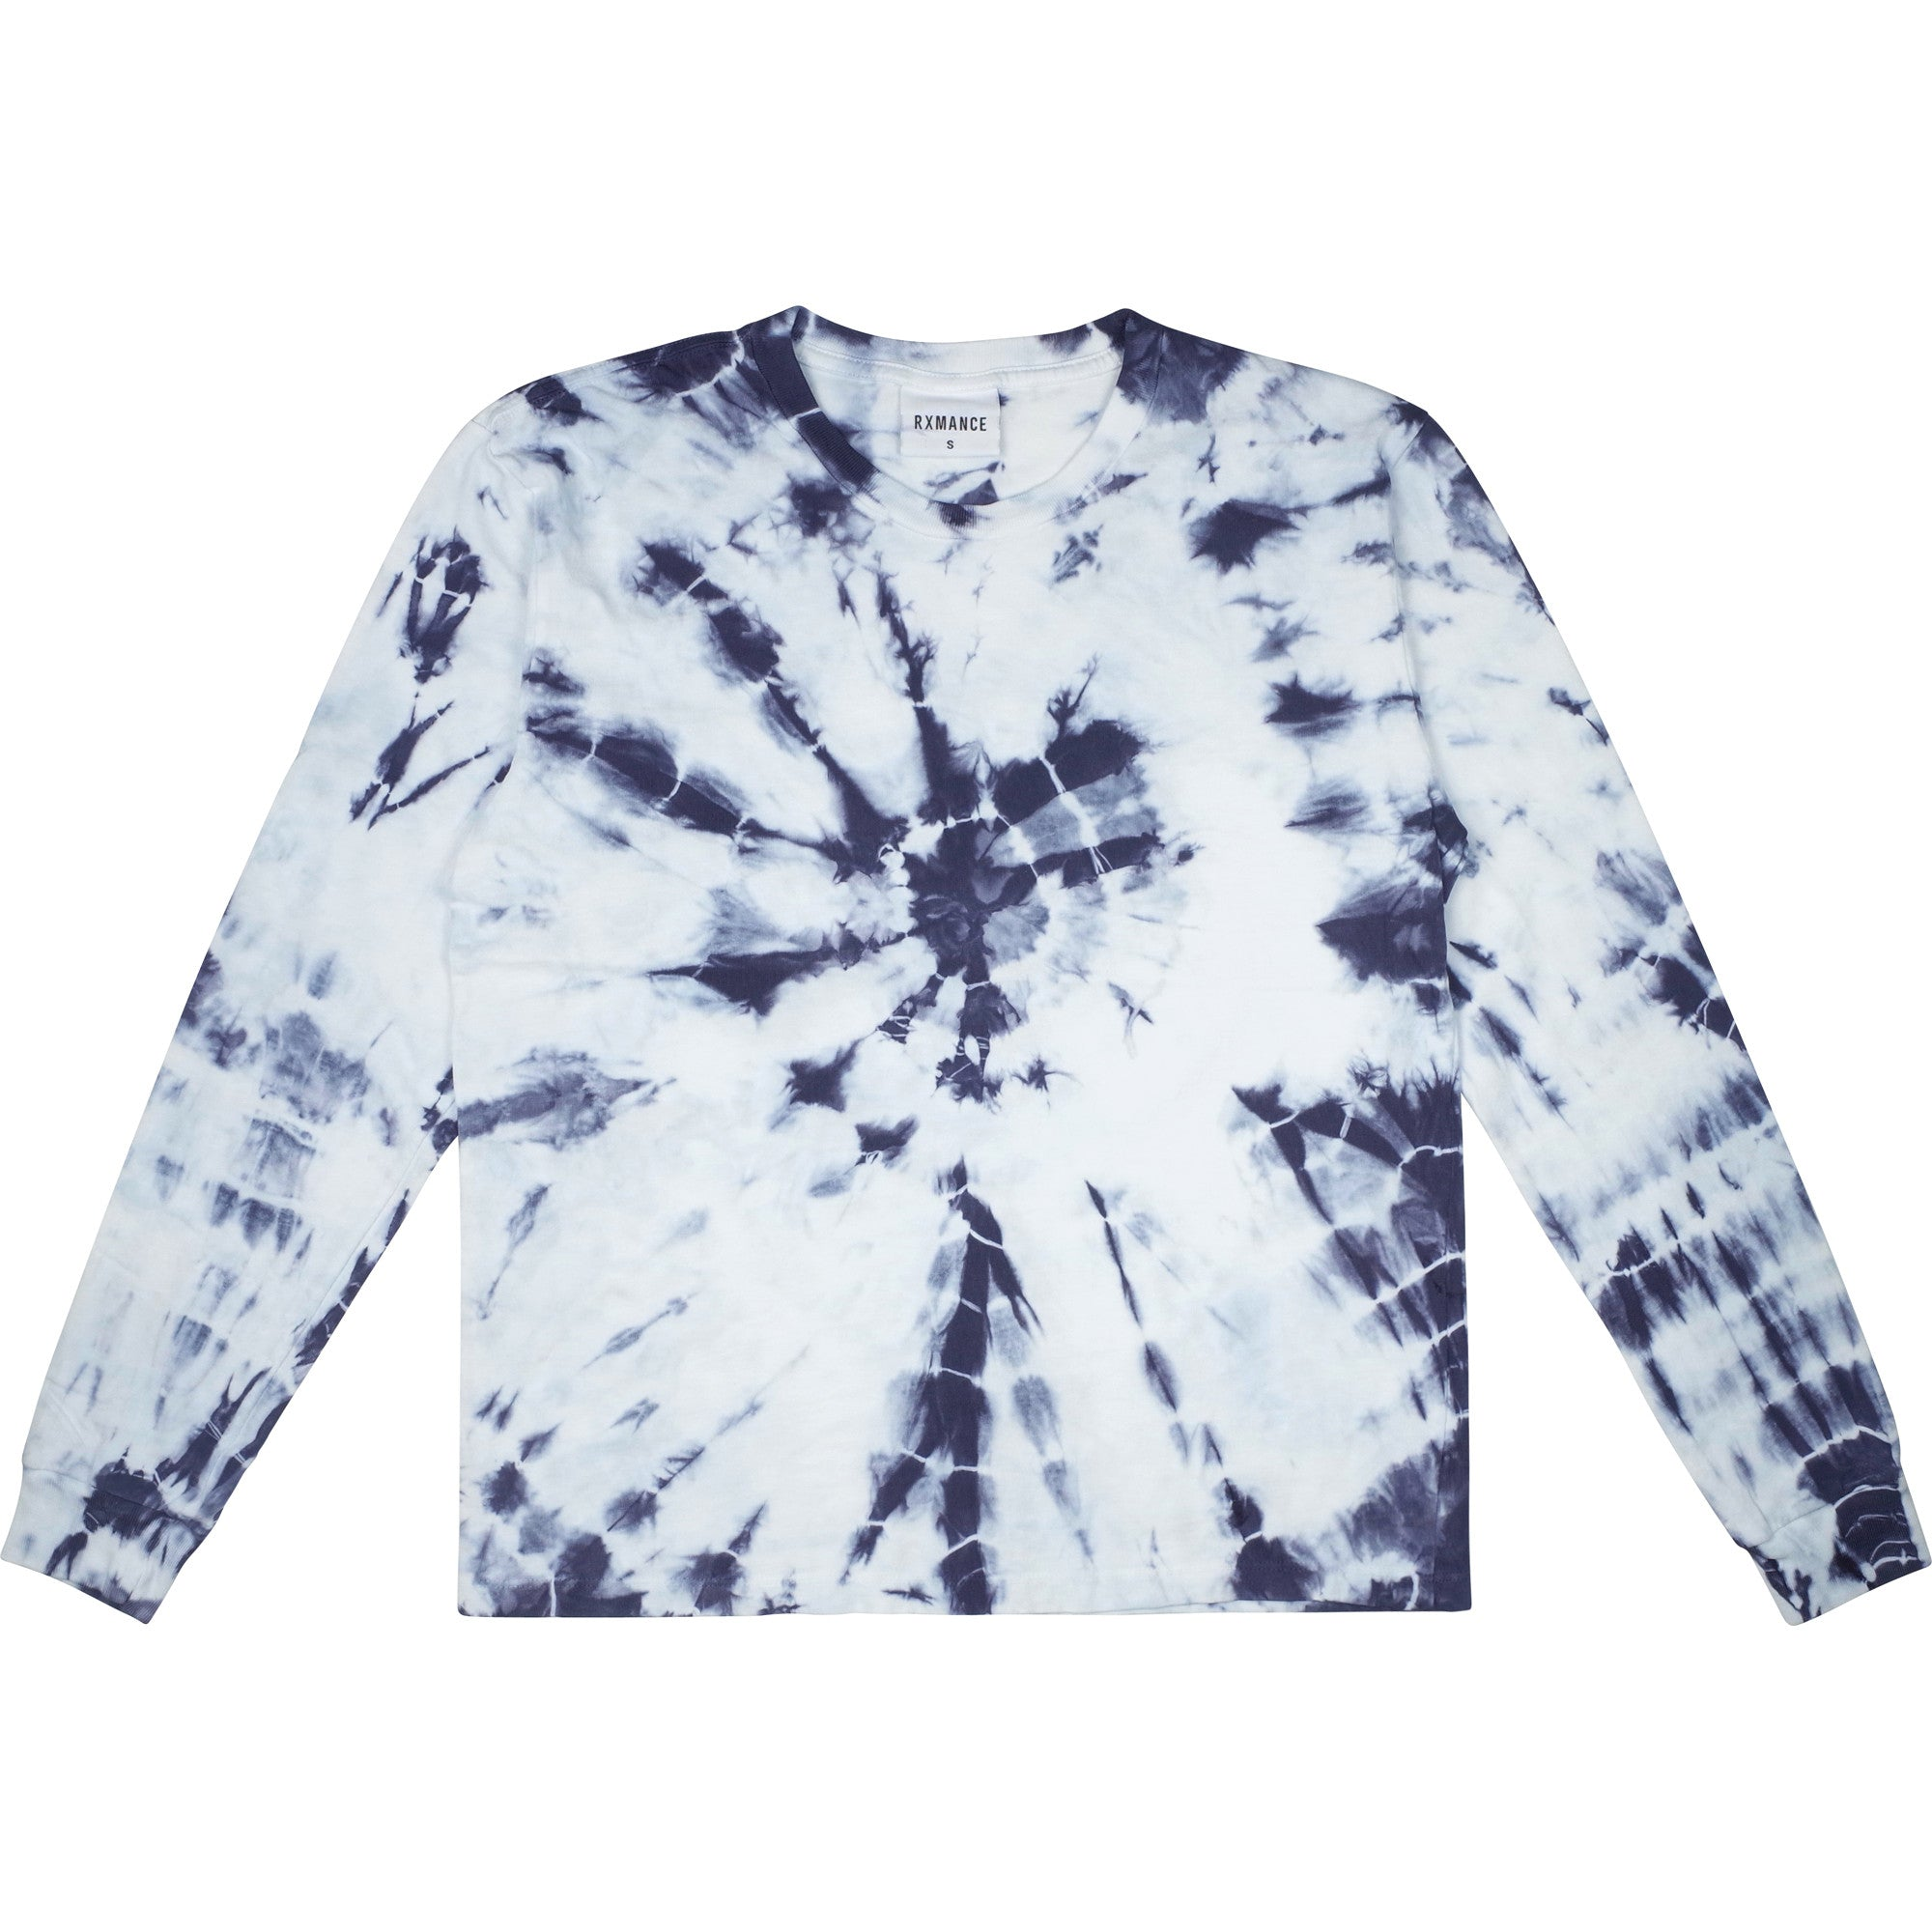 RXMANCE TIE DYE TOUR LONG SLEEVE TEE